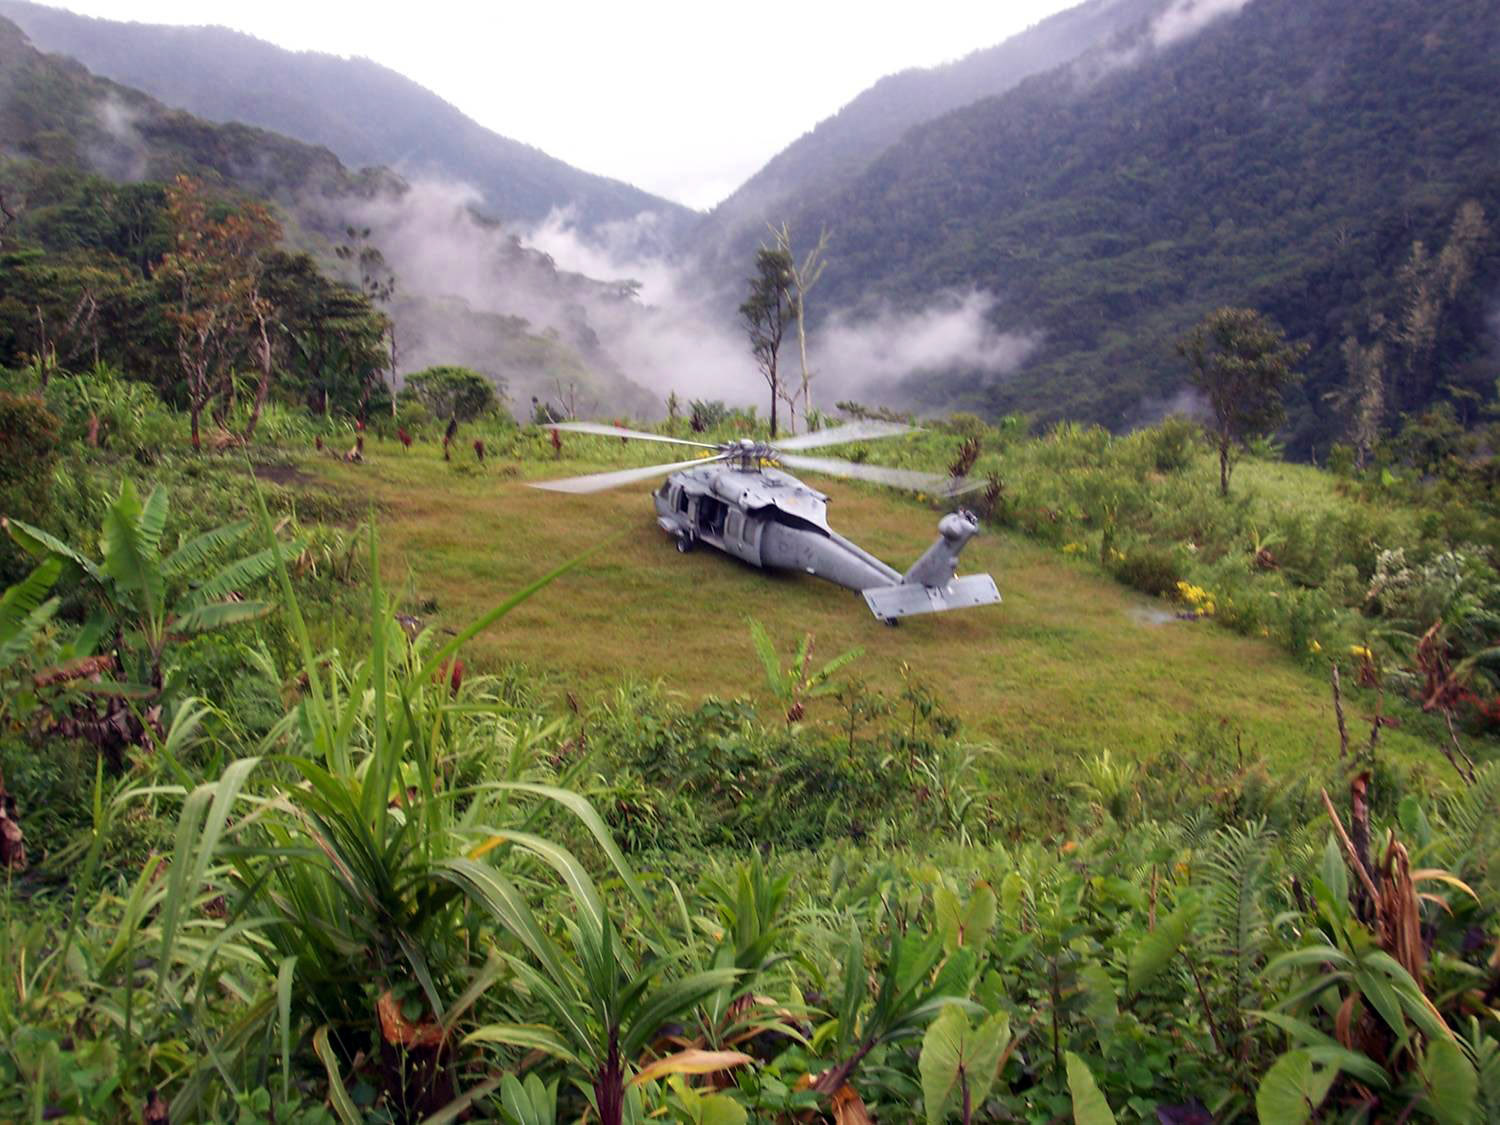 new us helicopter with File Us Navy 080808 N 3591m 001 An Mh 60s Seahawk Helicopter From Helicopter  Bat Support Squadron  Hs  21  Based In San Diego  Lands Near Alola Village In The Owen Stanley Mountain Range In Papua New Guinea To Evacuate Australian on H 37 walk in addition 6944334764 besides 16822792757 in addition File US Navy 080808 N 3591M 001 An MH 60S Seahawk helicopter from Helicopter  bat Support squadron  HS  21  based in San Diego  lands near Alola Village in the Owen Stanley Mountain Range in Papua New Guinea to evacuate Australian together with Yoto air heli fire.